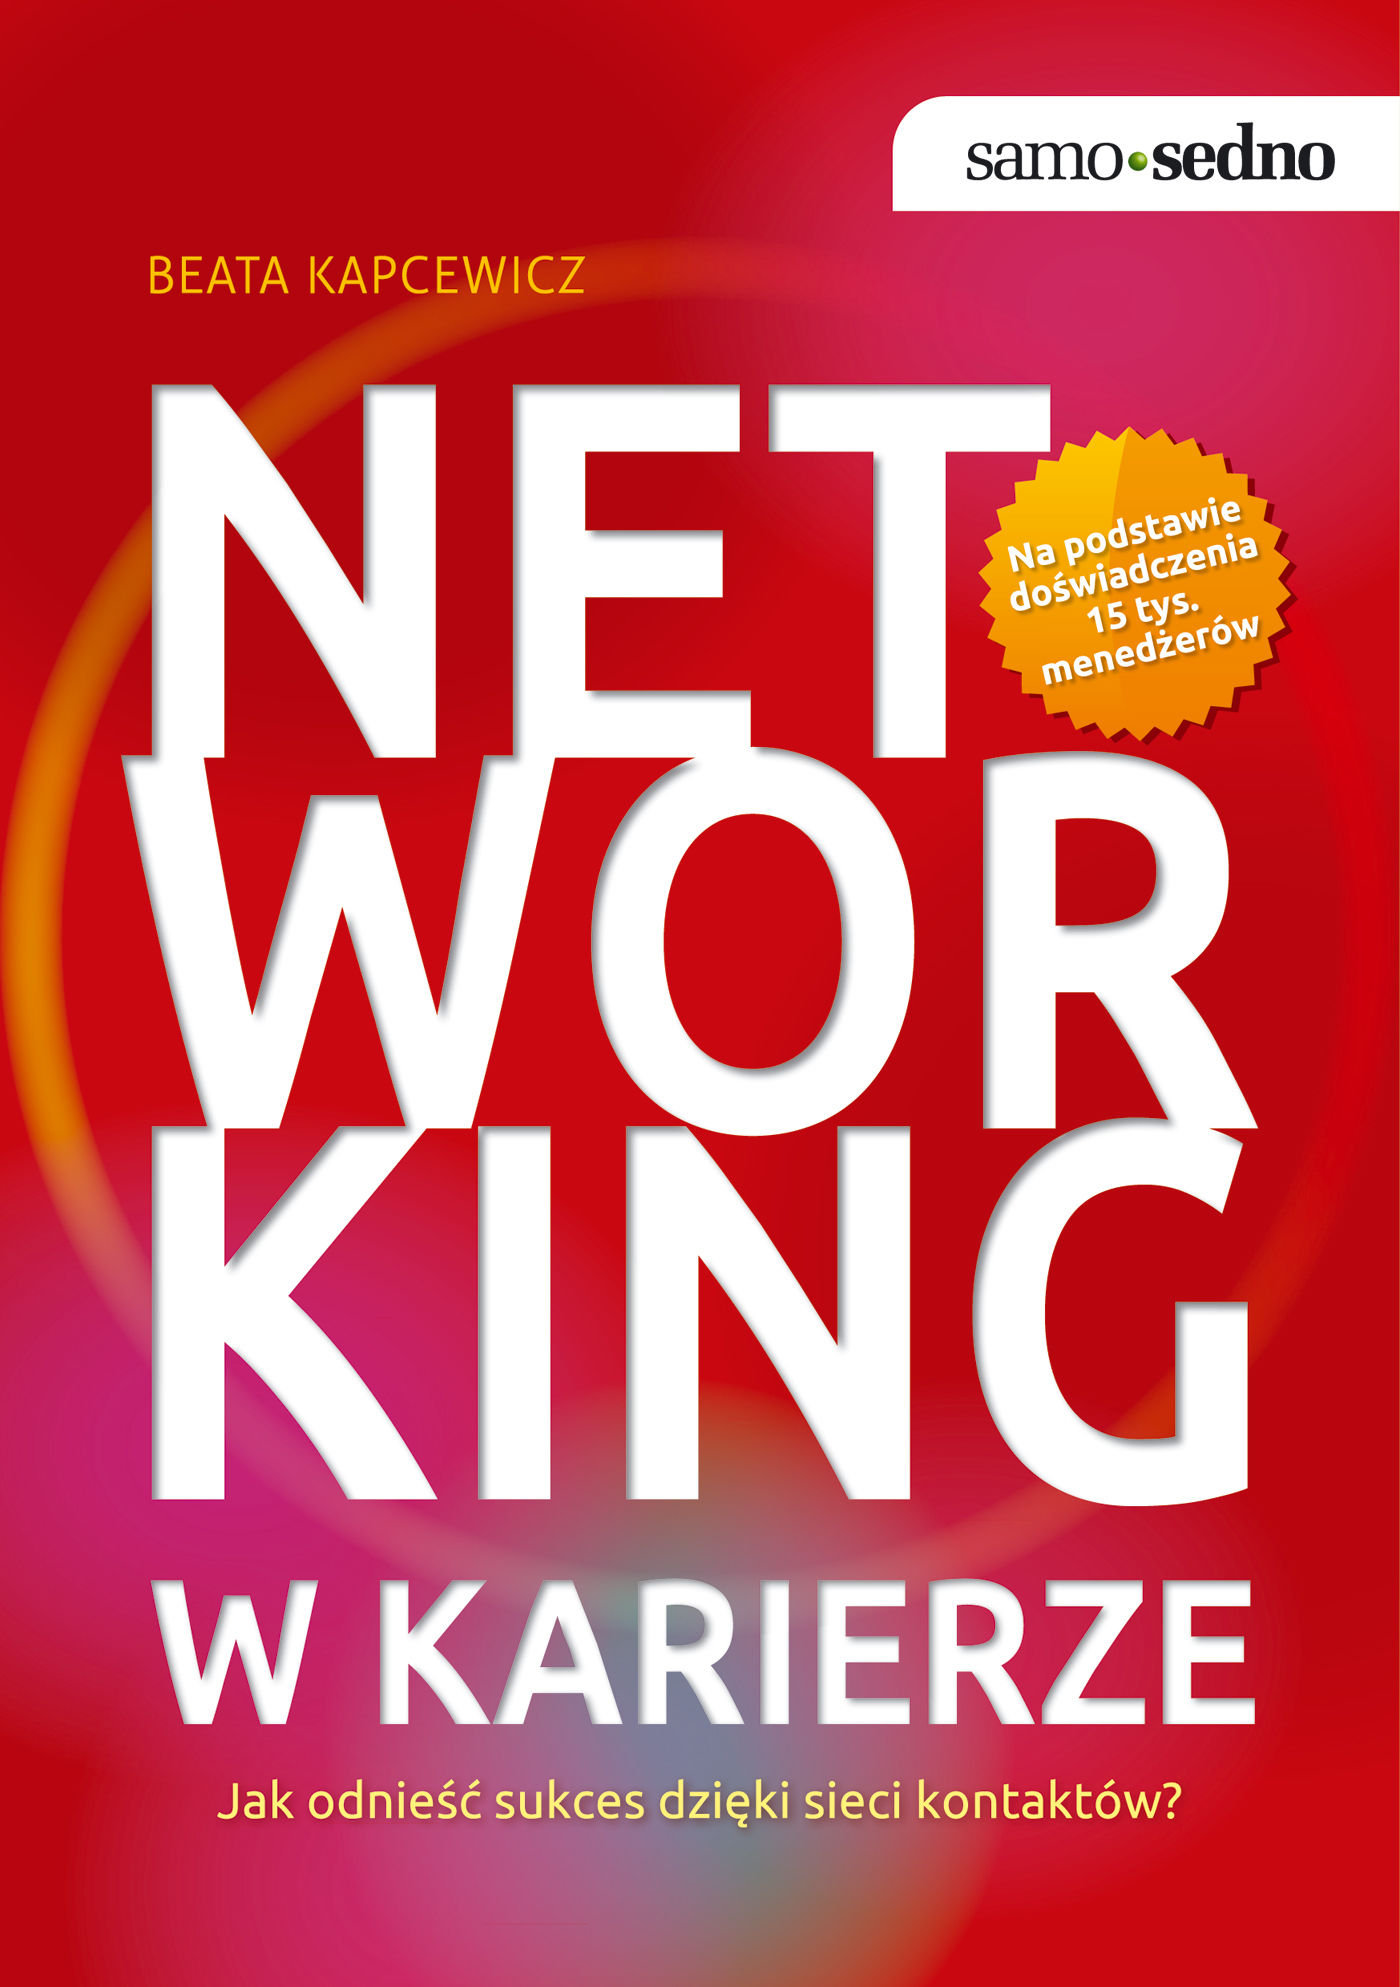 Samo Sedno  Networking w karierze - Beata Kapcewicz - ebook